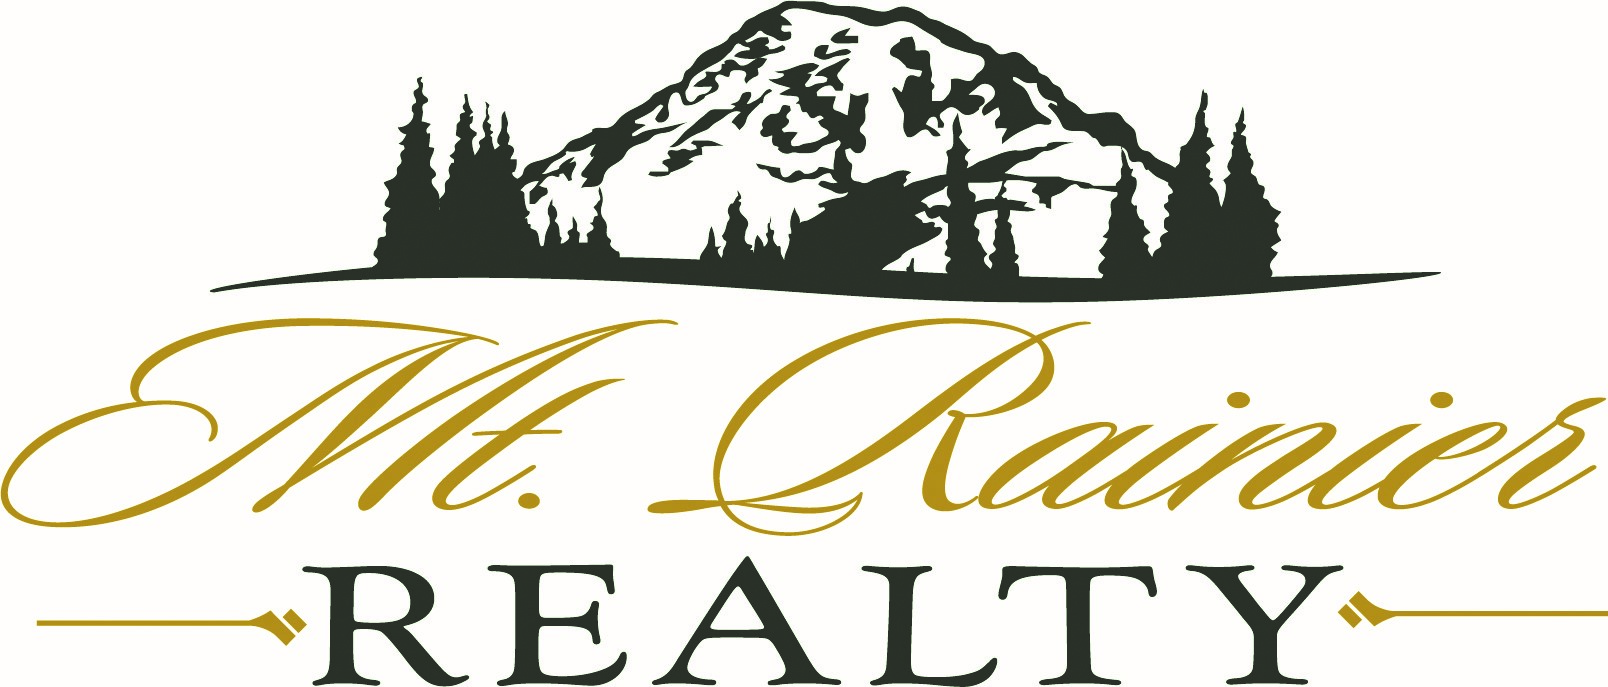 Mt rainier realty